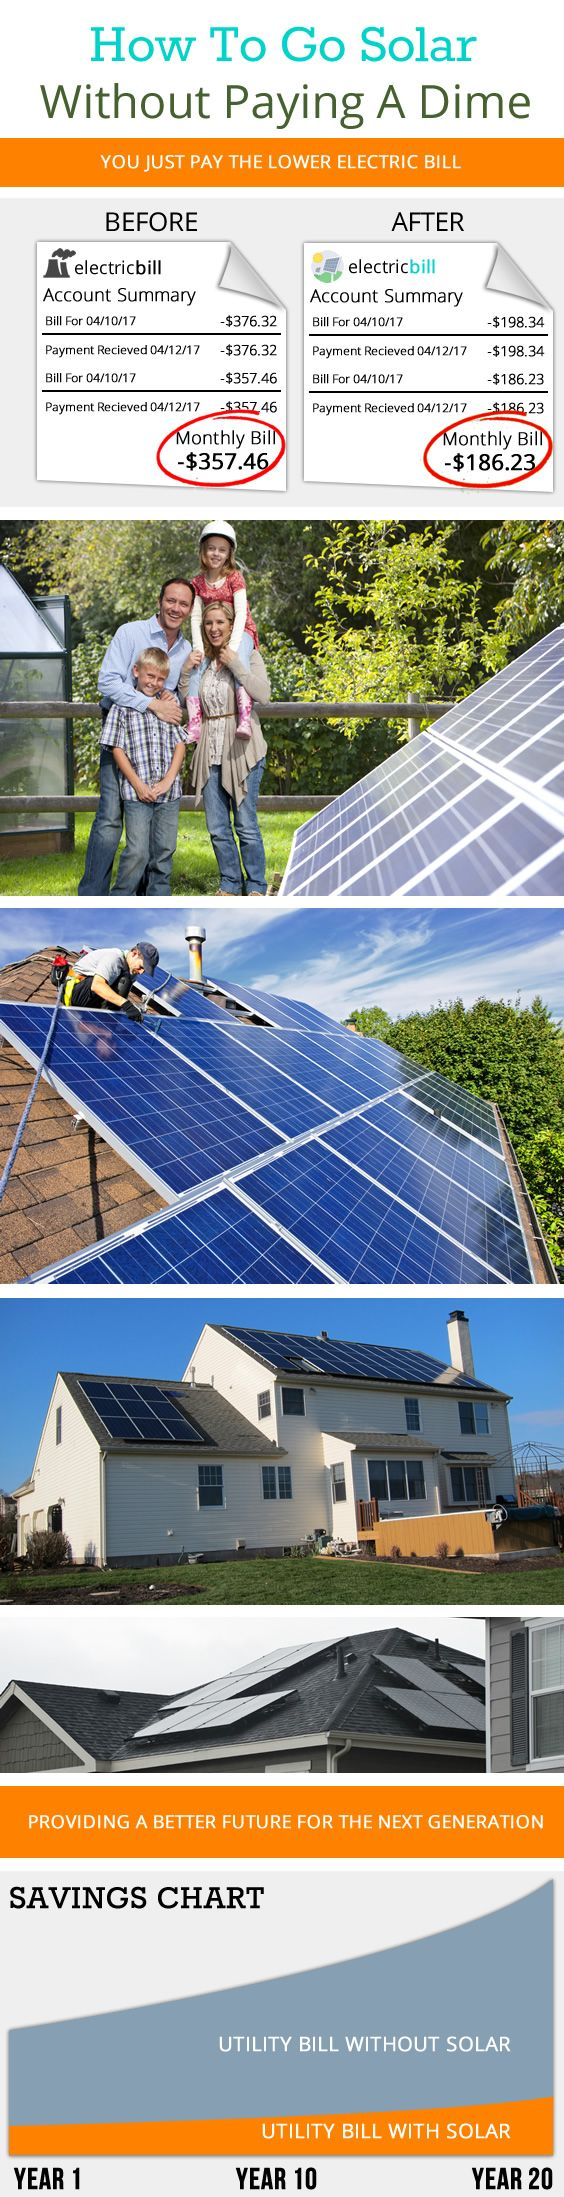 U S Launches No Cost Solar Program For Middle Class